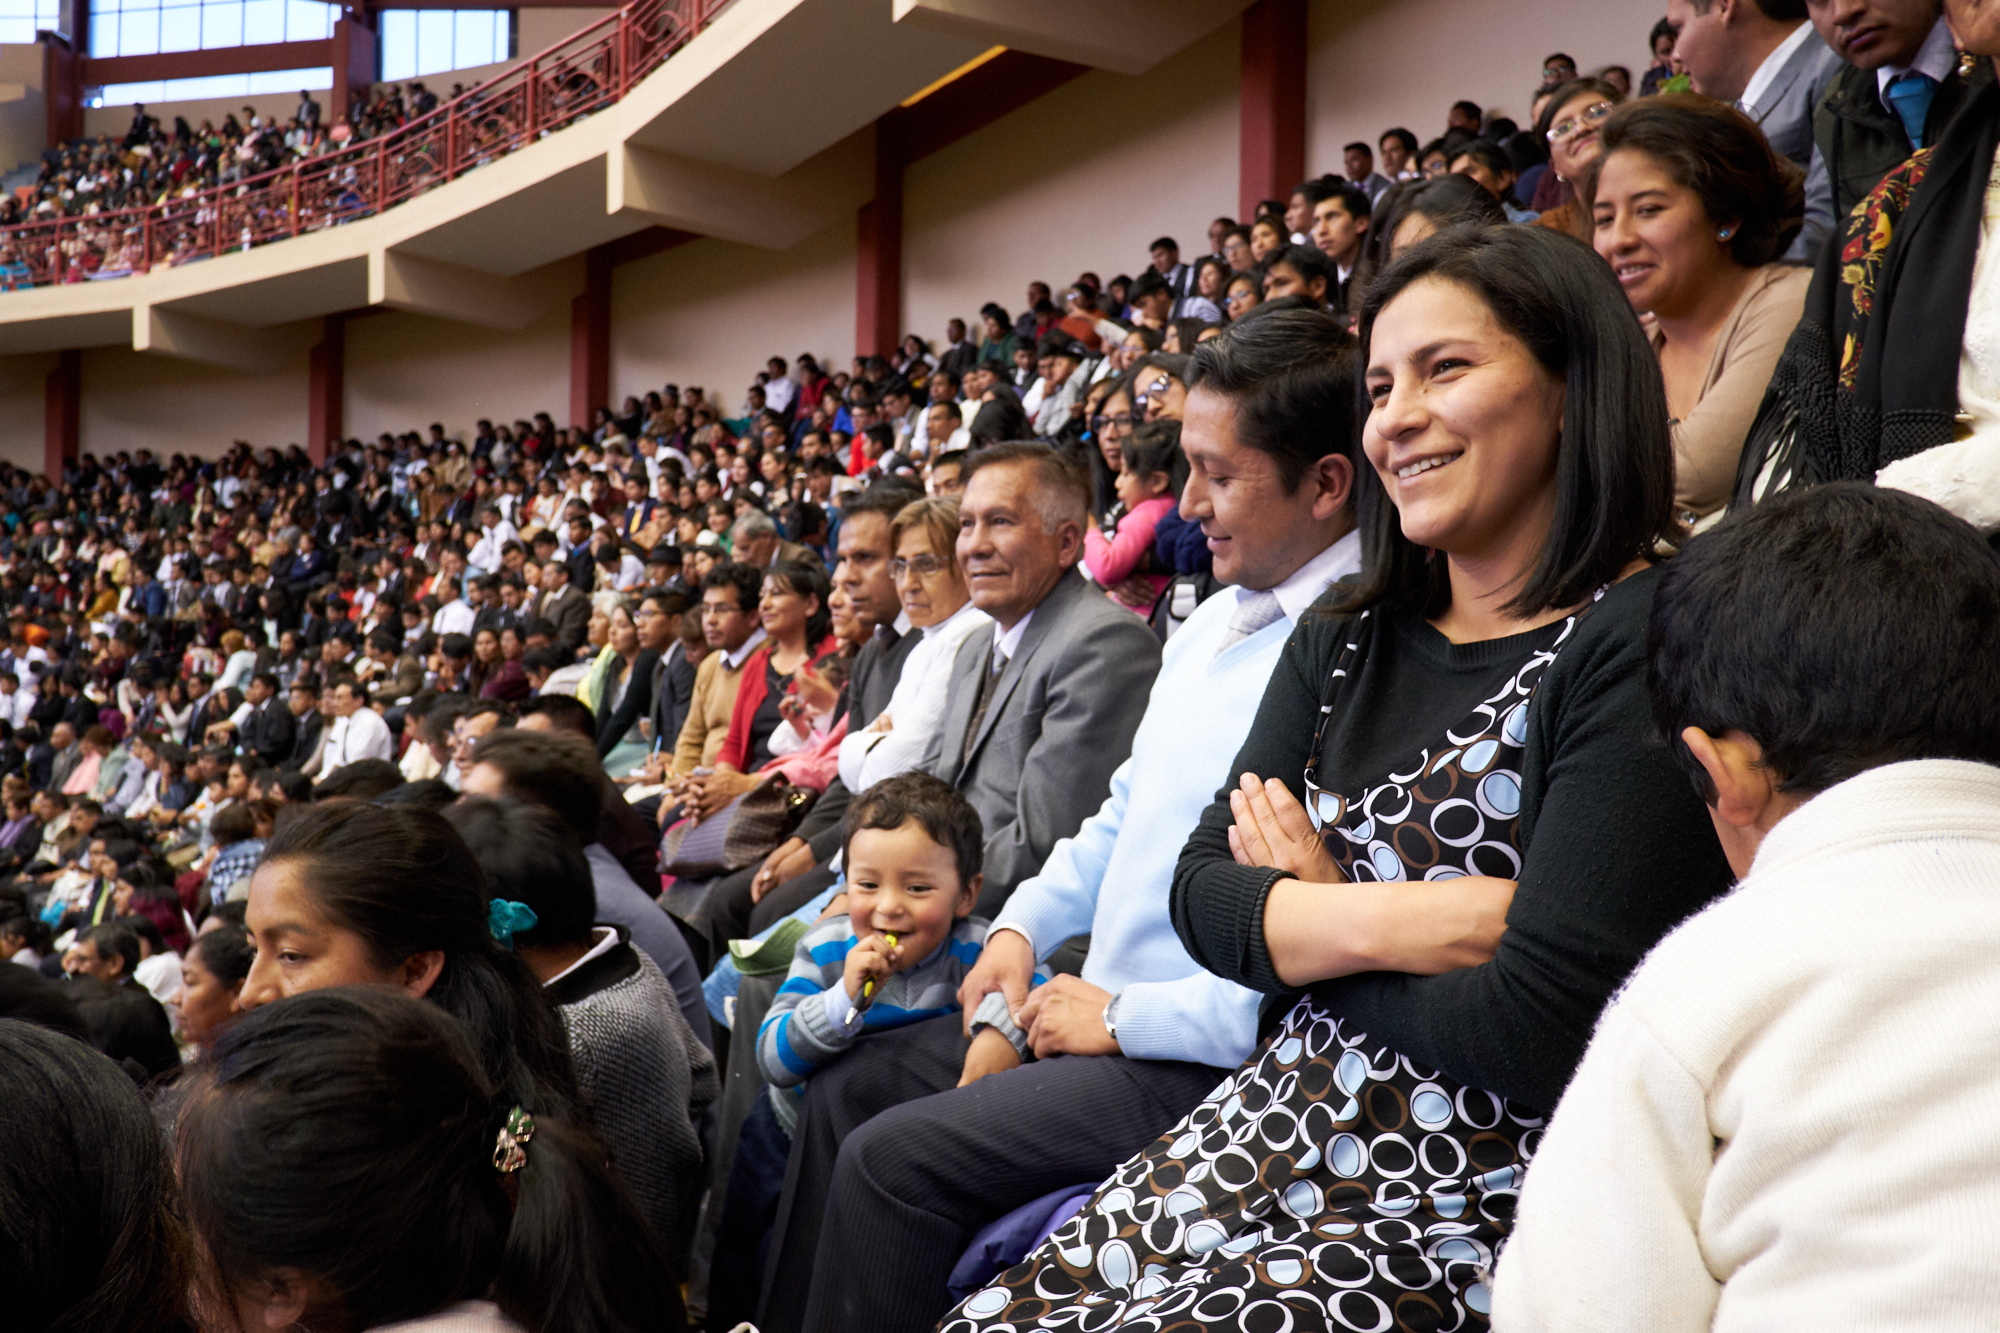 Members of The Church of Jesus Christ of Latter-day Saints gather to hear counsel and encouragement from President Russell M. Nelson in the Polideportivo Heroes de Octubre in El Alto, Bolivia, on Oct. 21, 2018. Others watched a broadcast of the event at Church meetinghouses throughout the country.